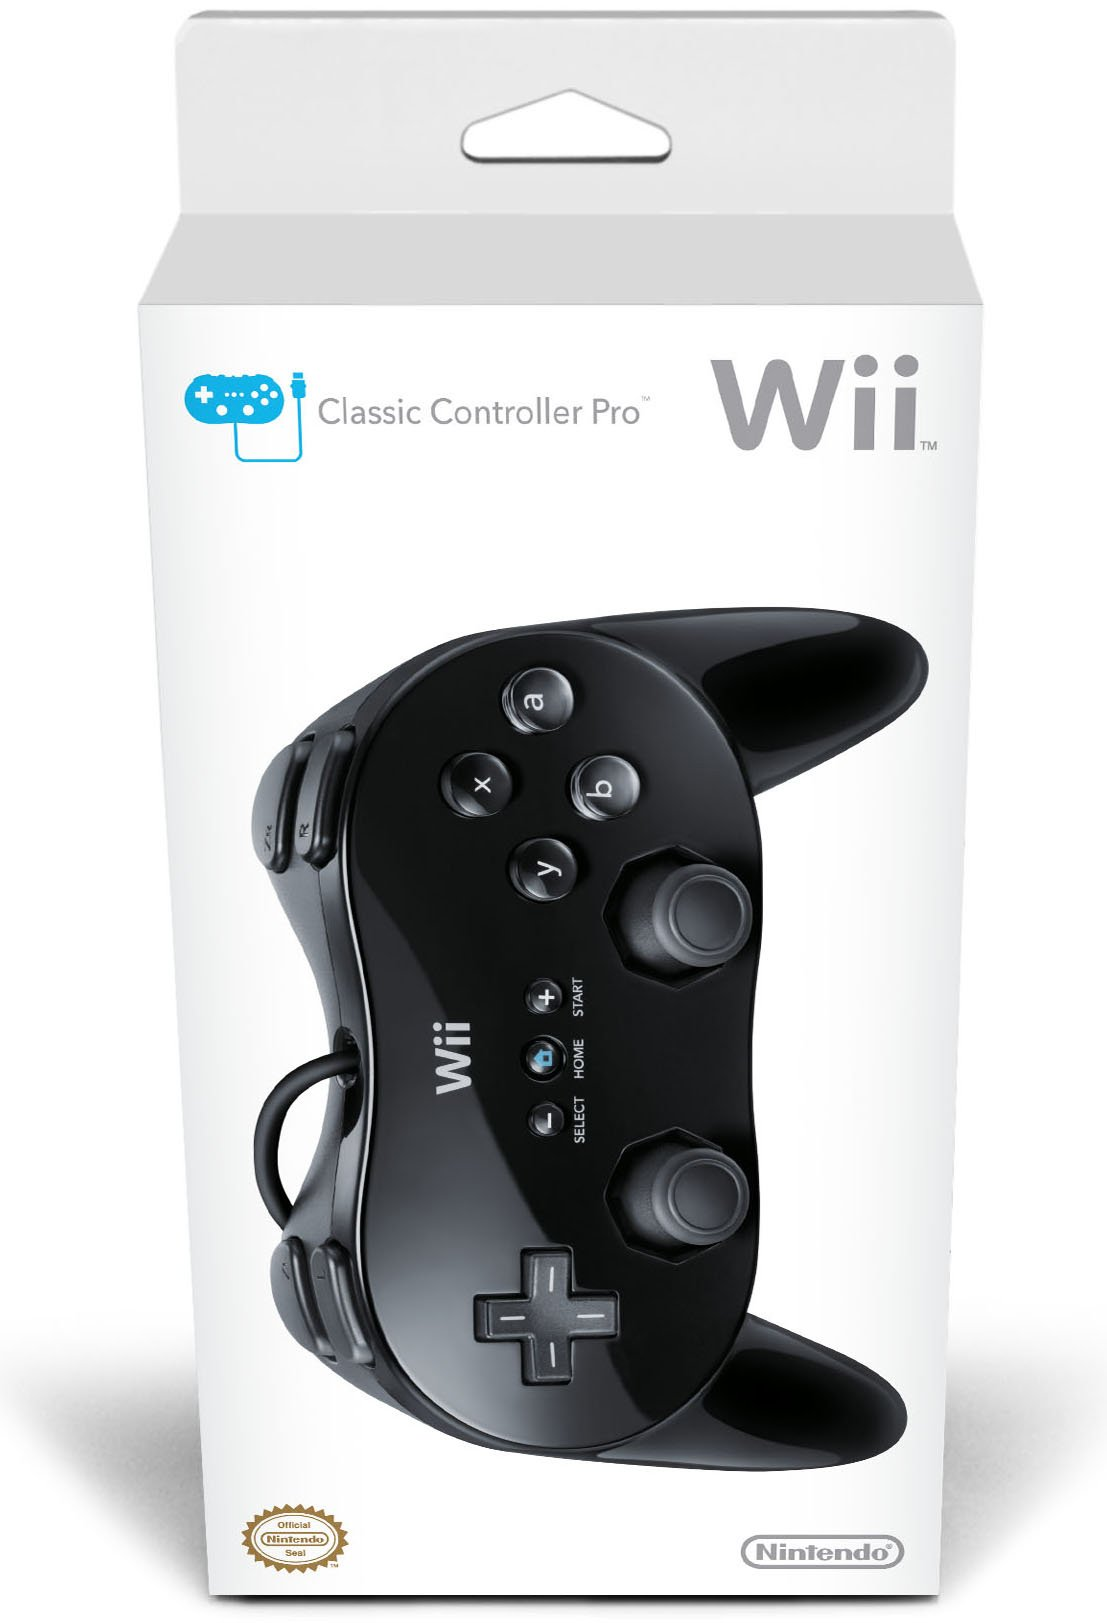 Wii Classic Controller Pro - Black - Nintendo Wii Standard Edition by Nintendo (Image #2)